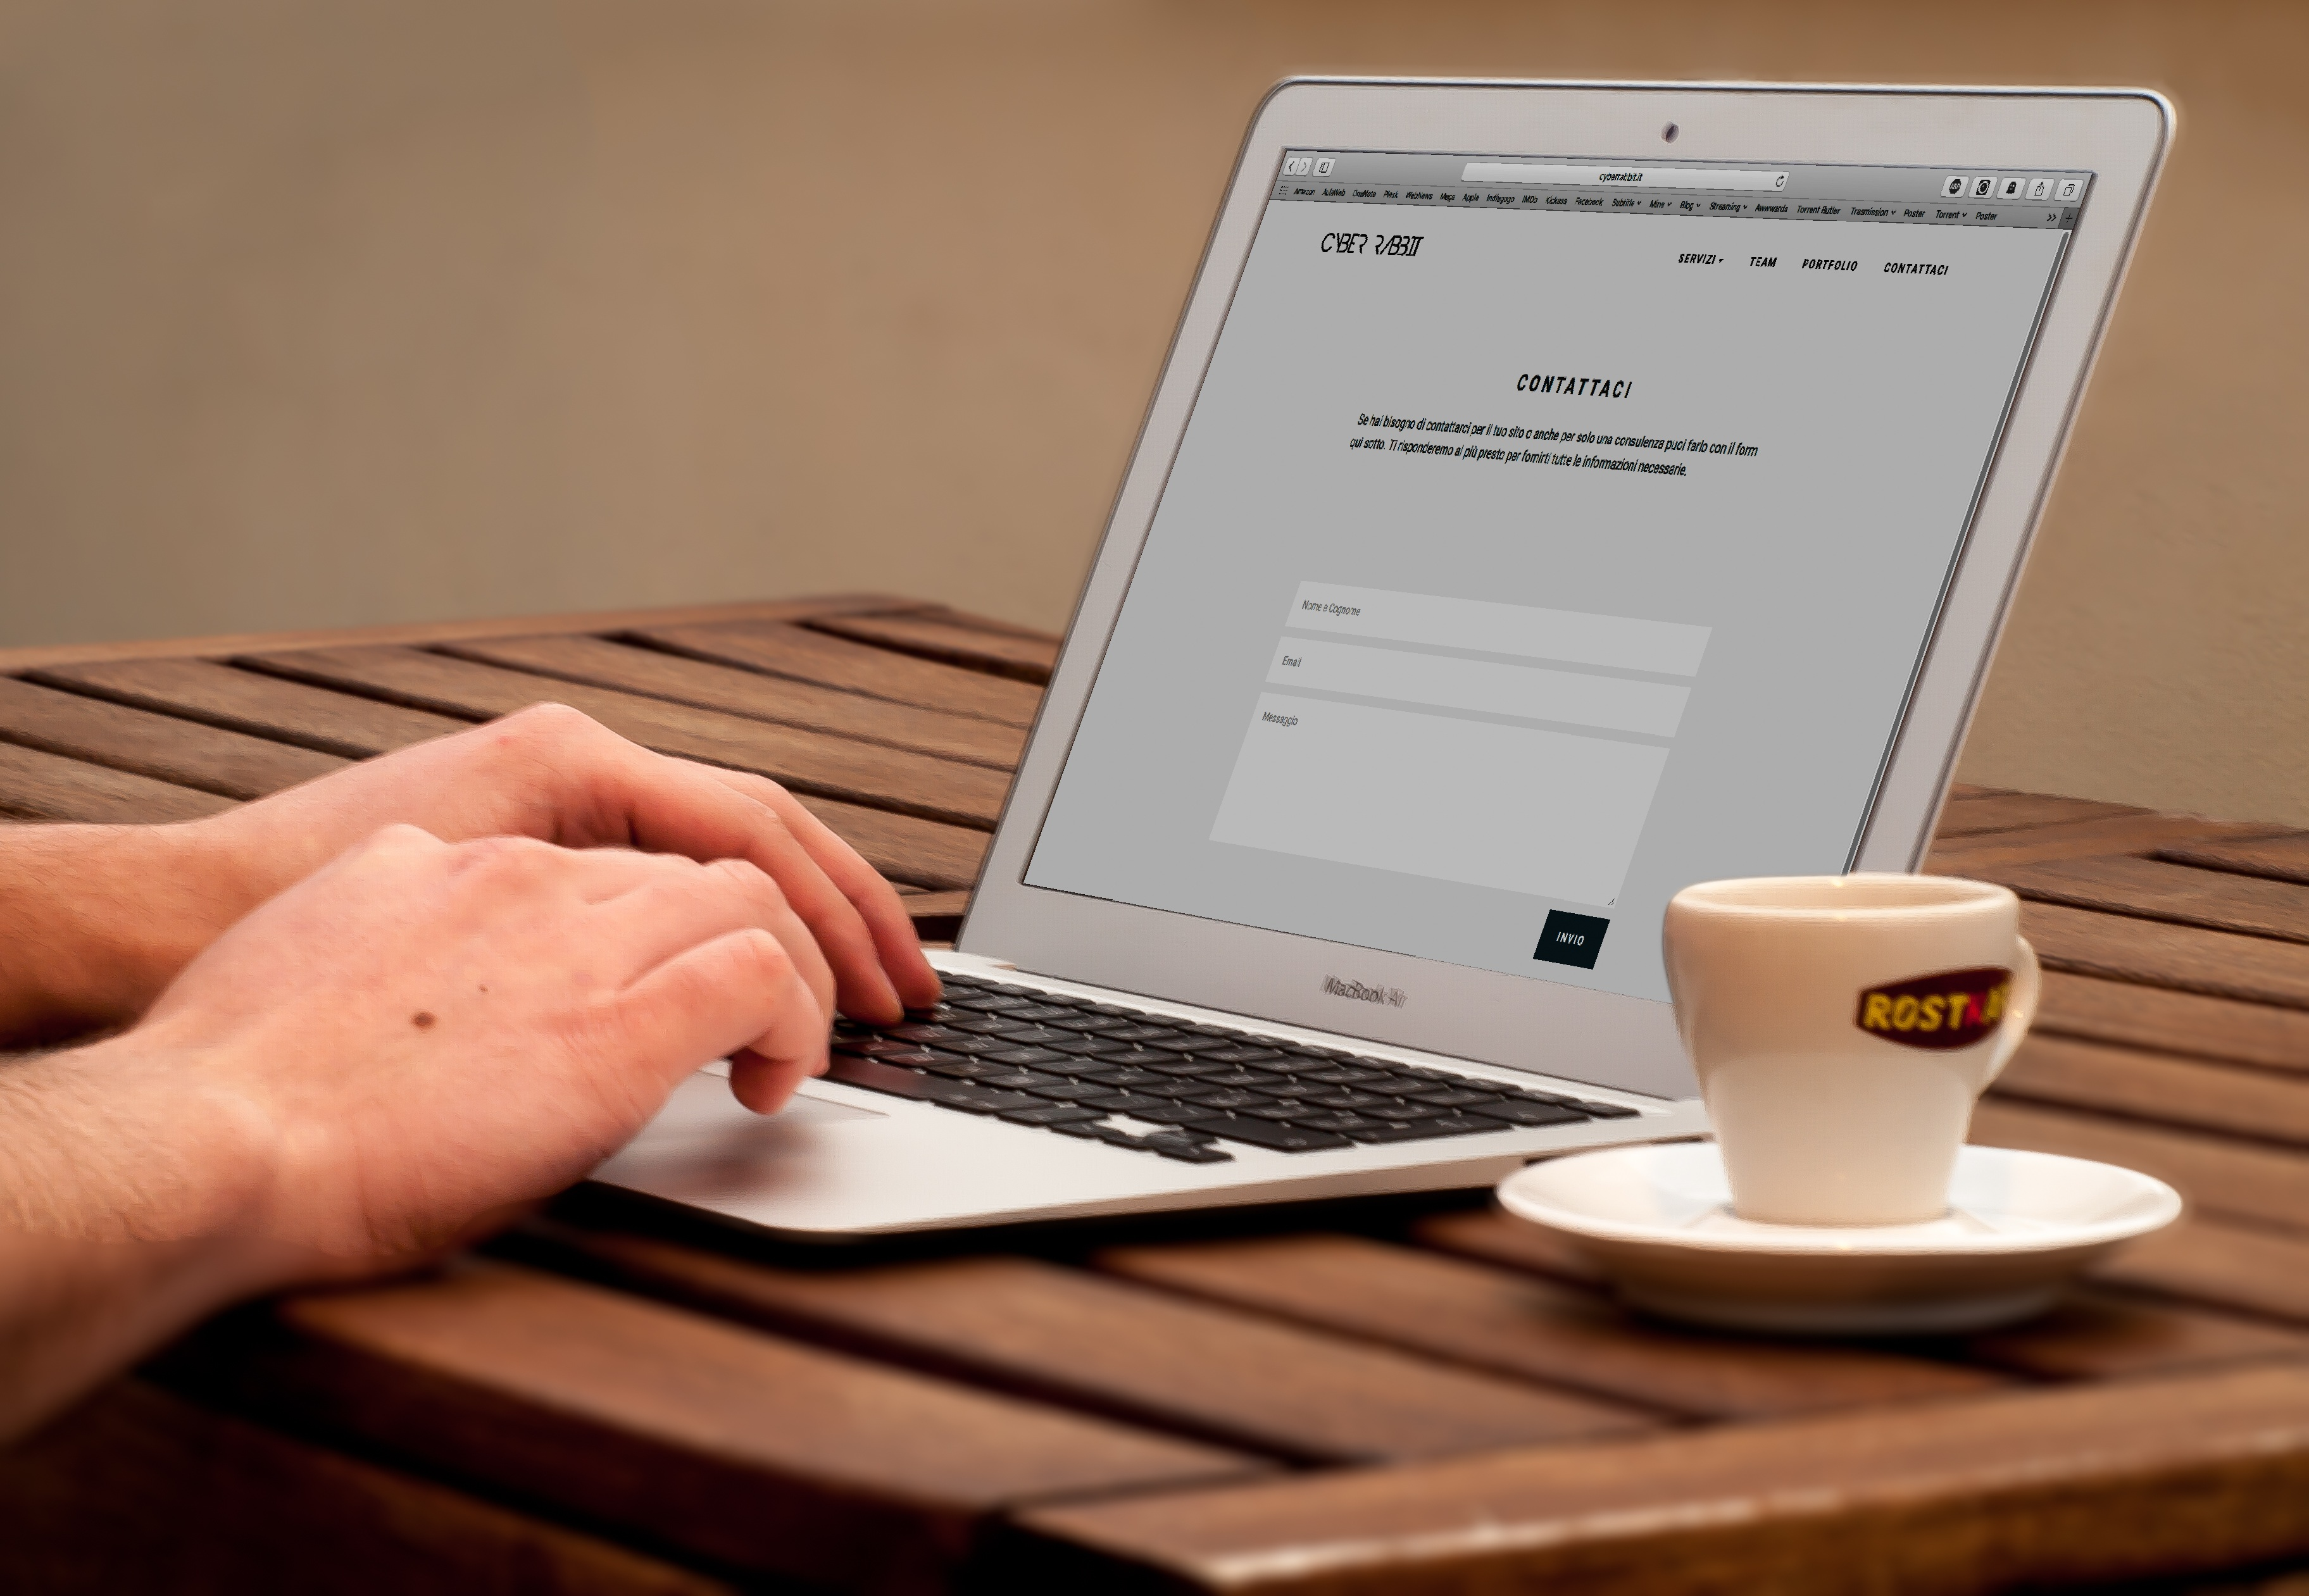 Human Using Laptop Beside Teacup on the Wooden Table